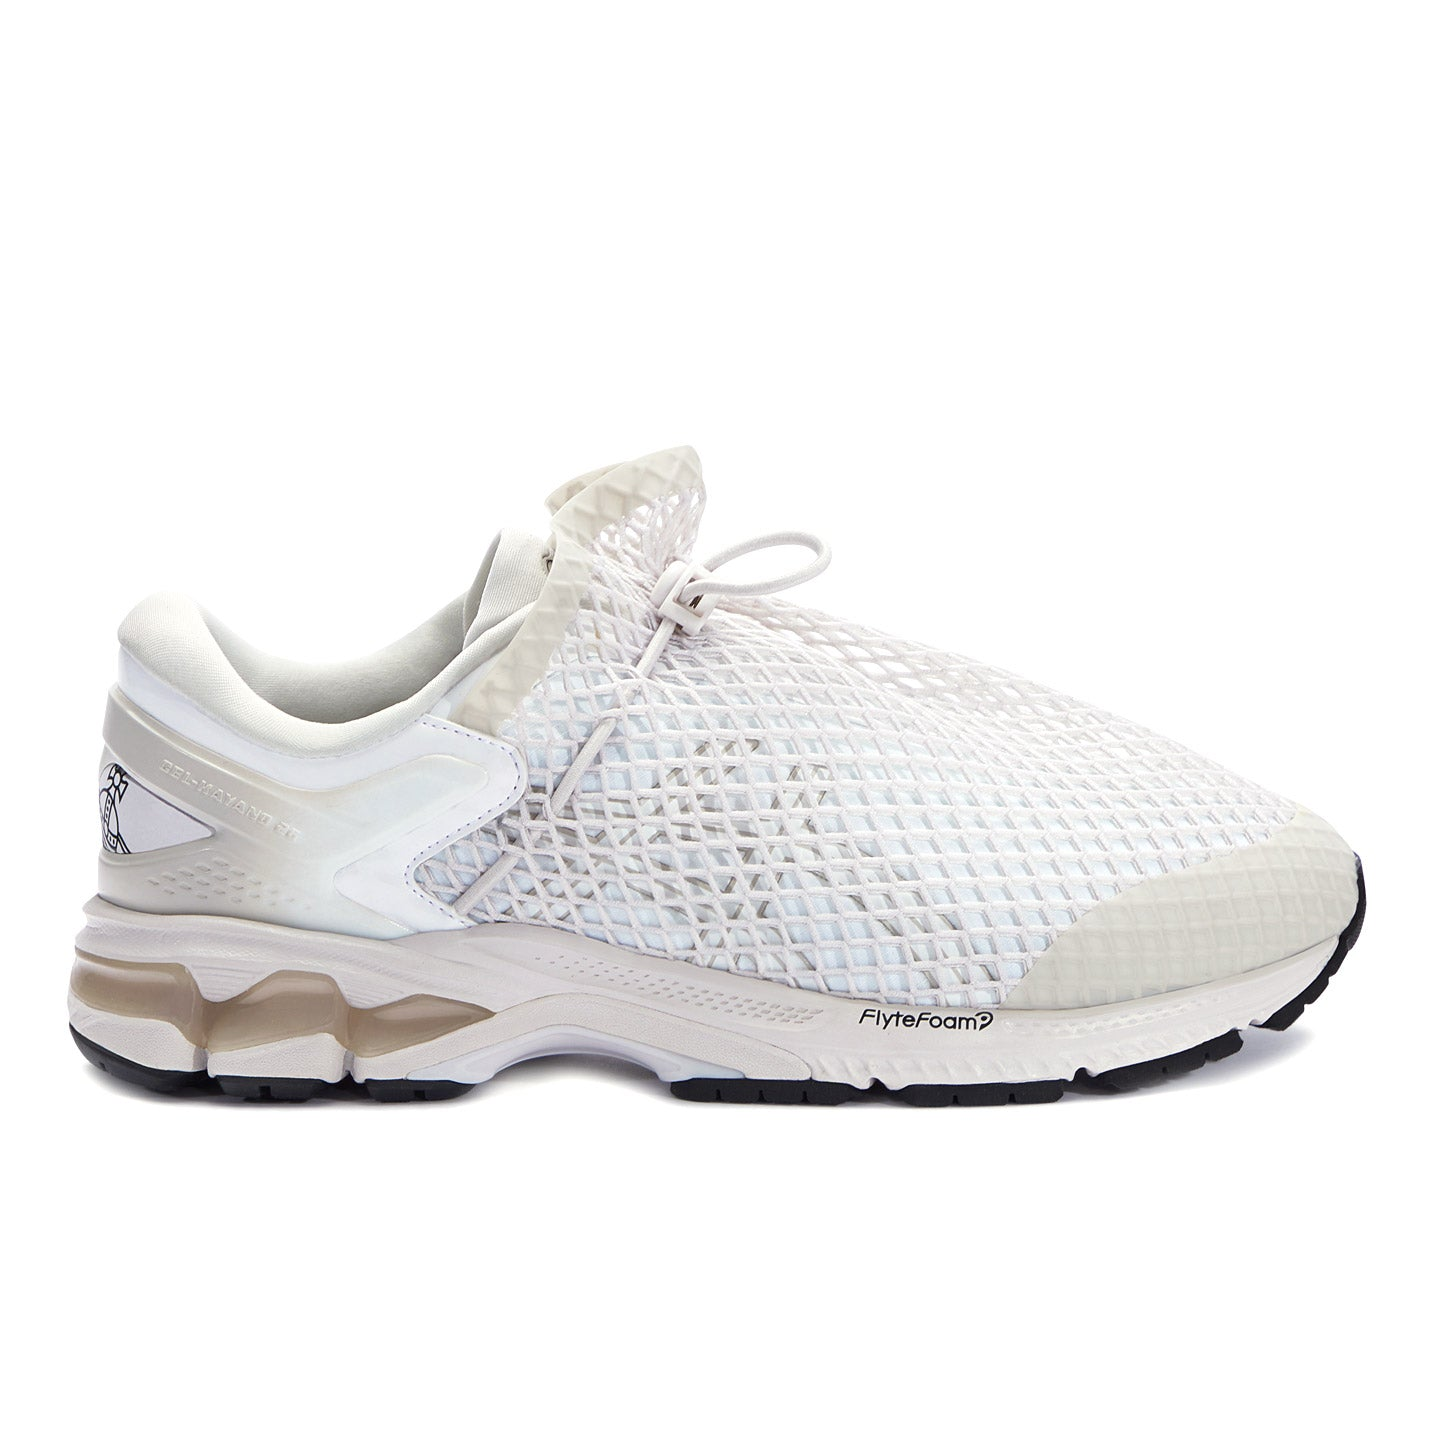 ASICS VIVIENNE WESTWOOD GEL-KAYANO 26 BIRCH / WHITE